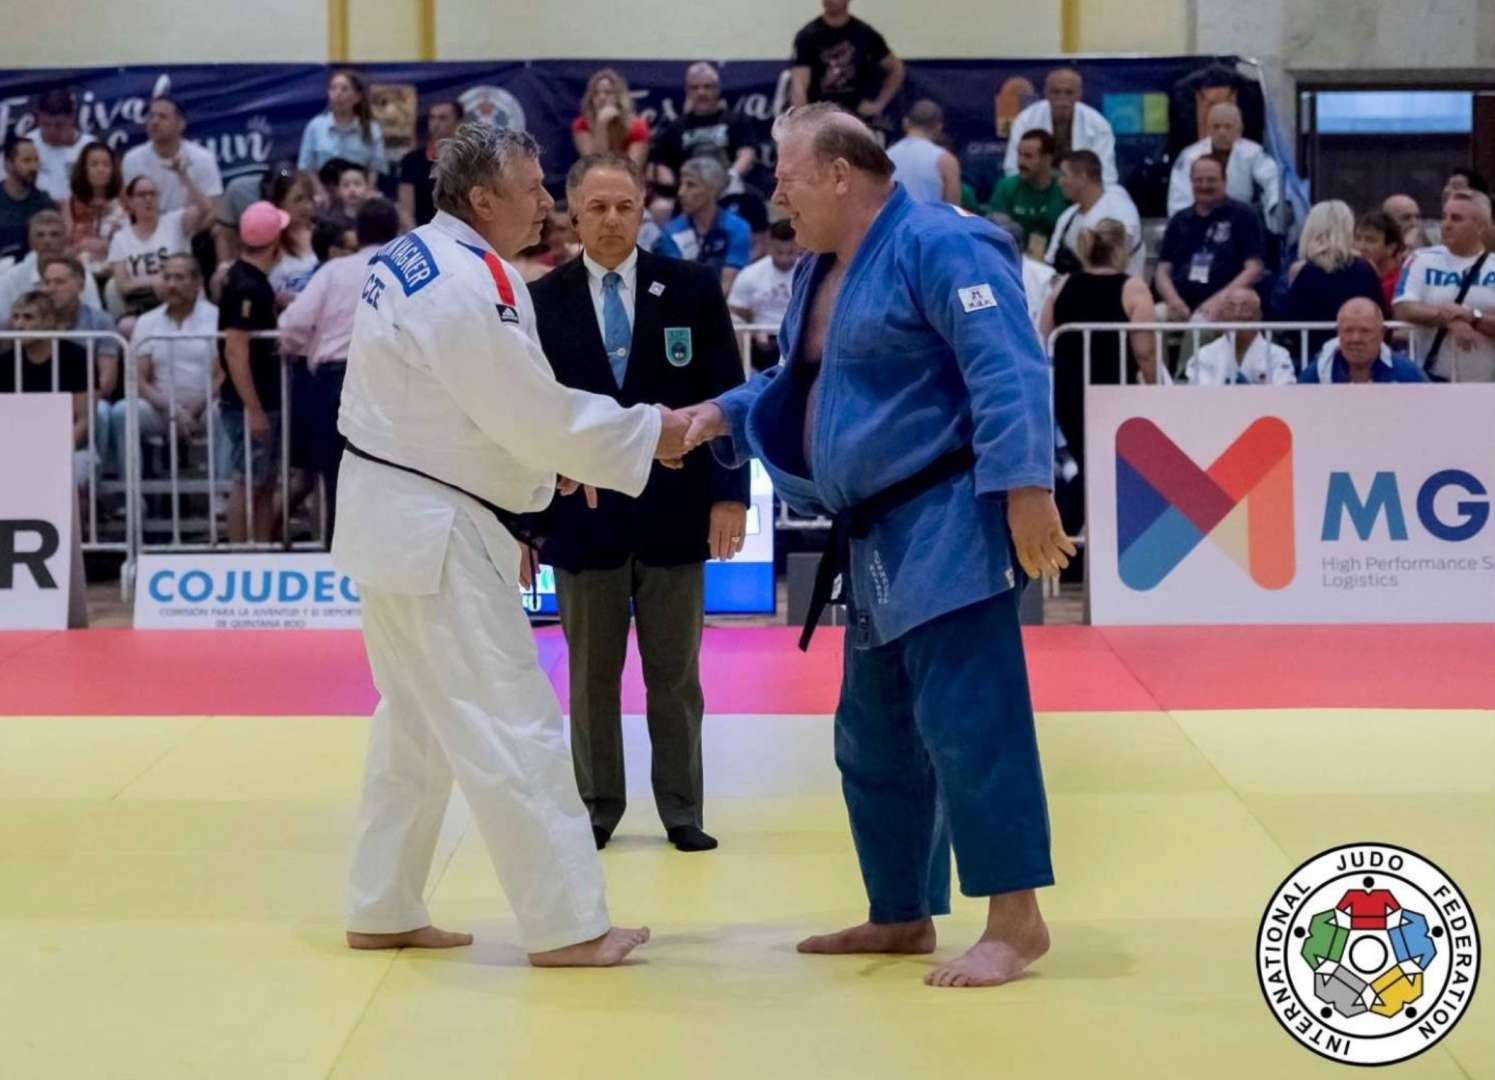 Judo Family Mourns the Passing Away of Arthur Schnabel / IJF org